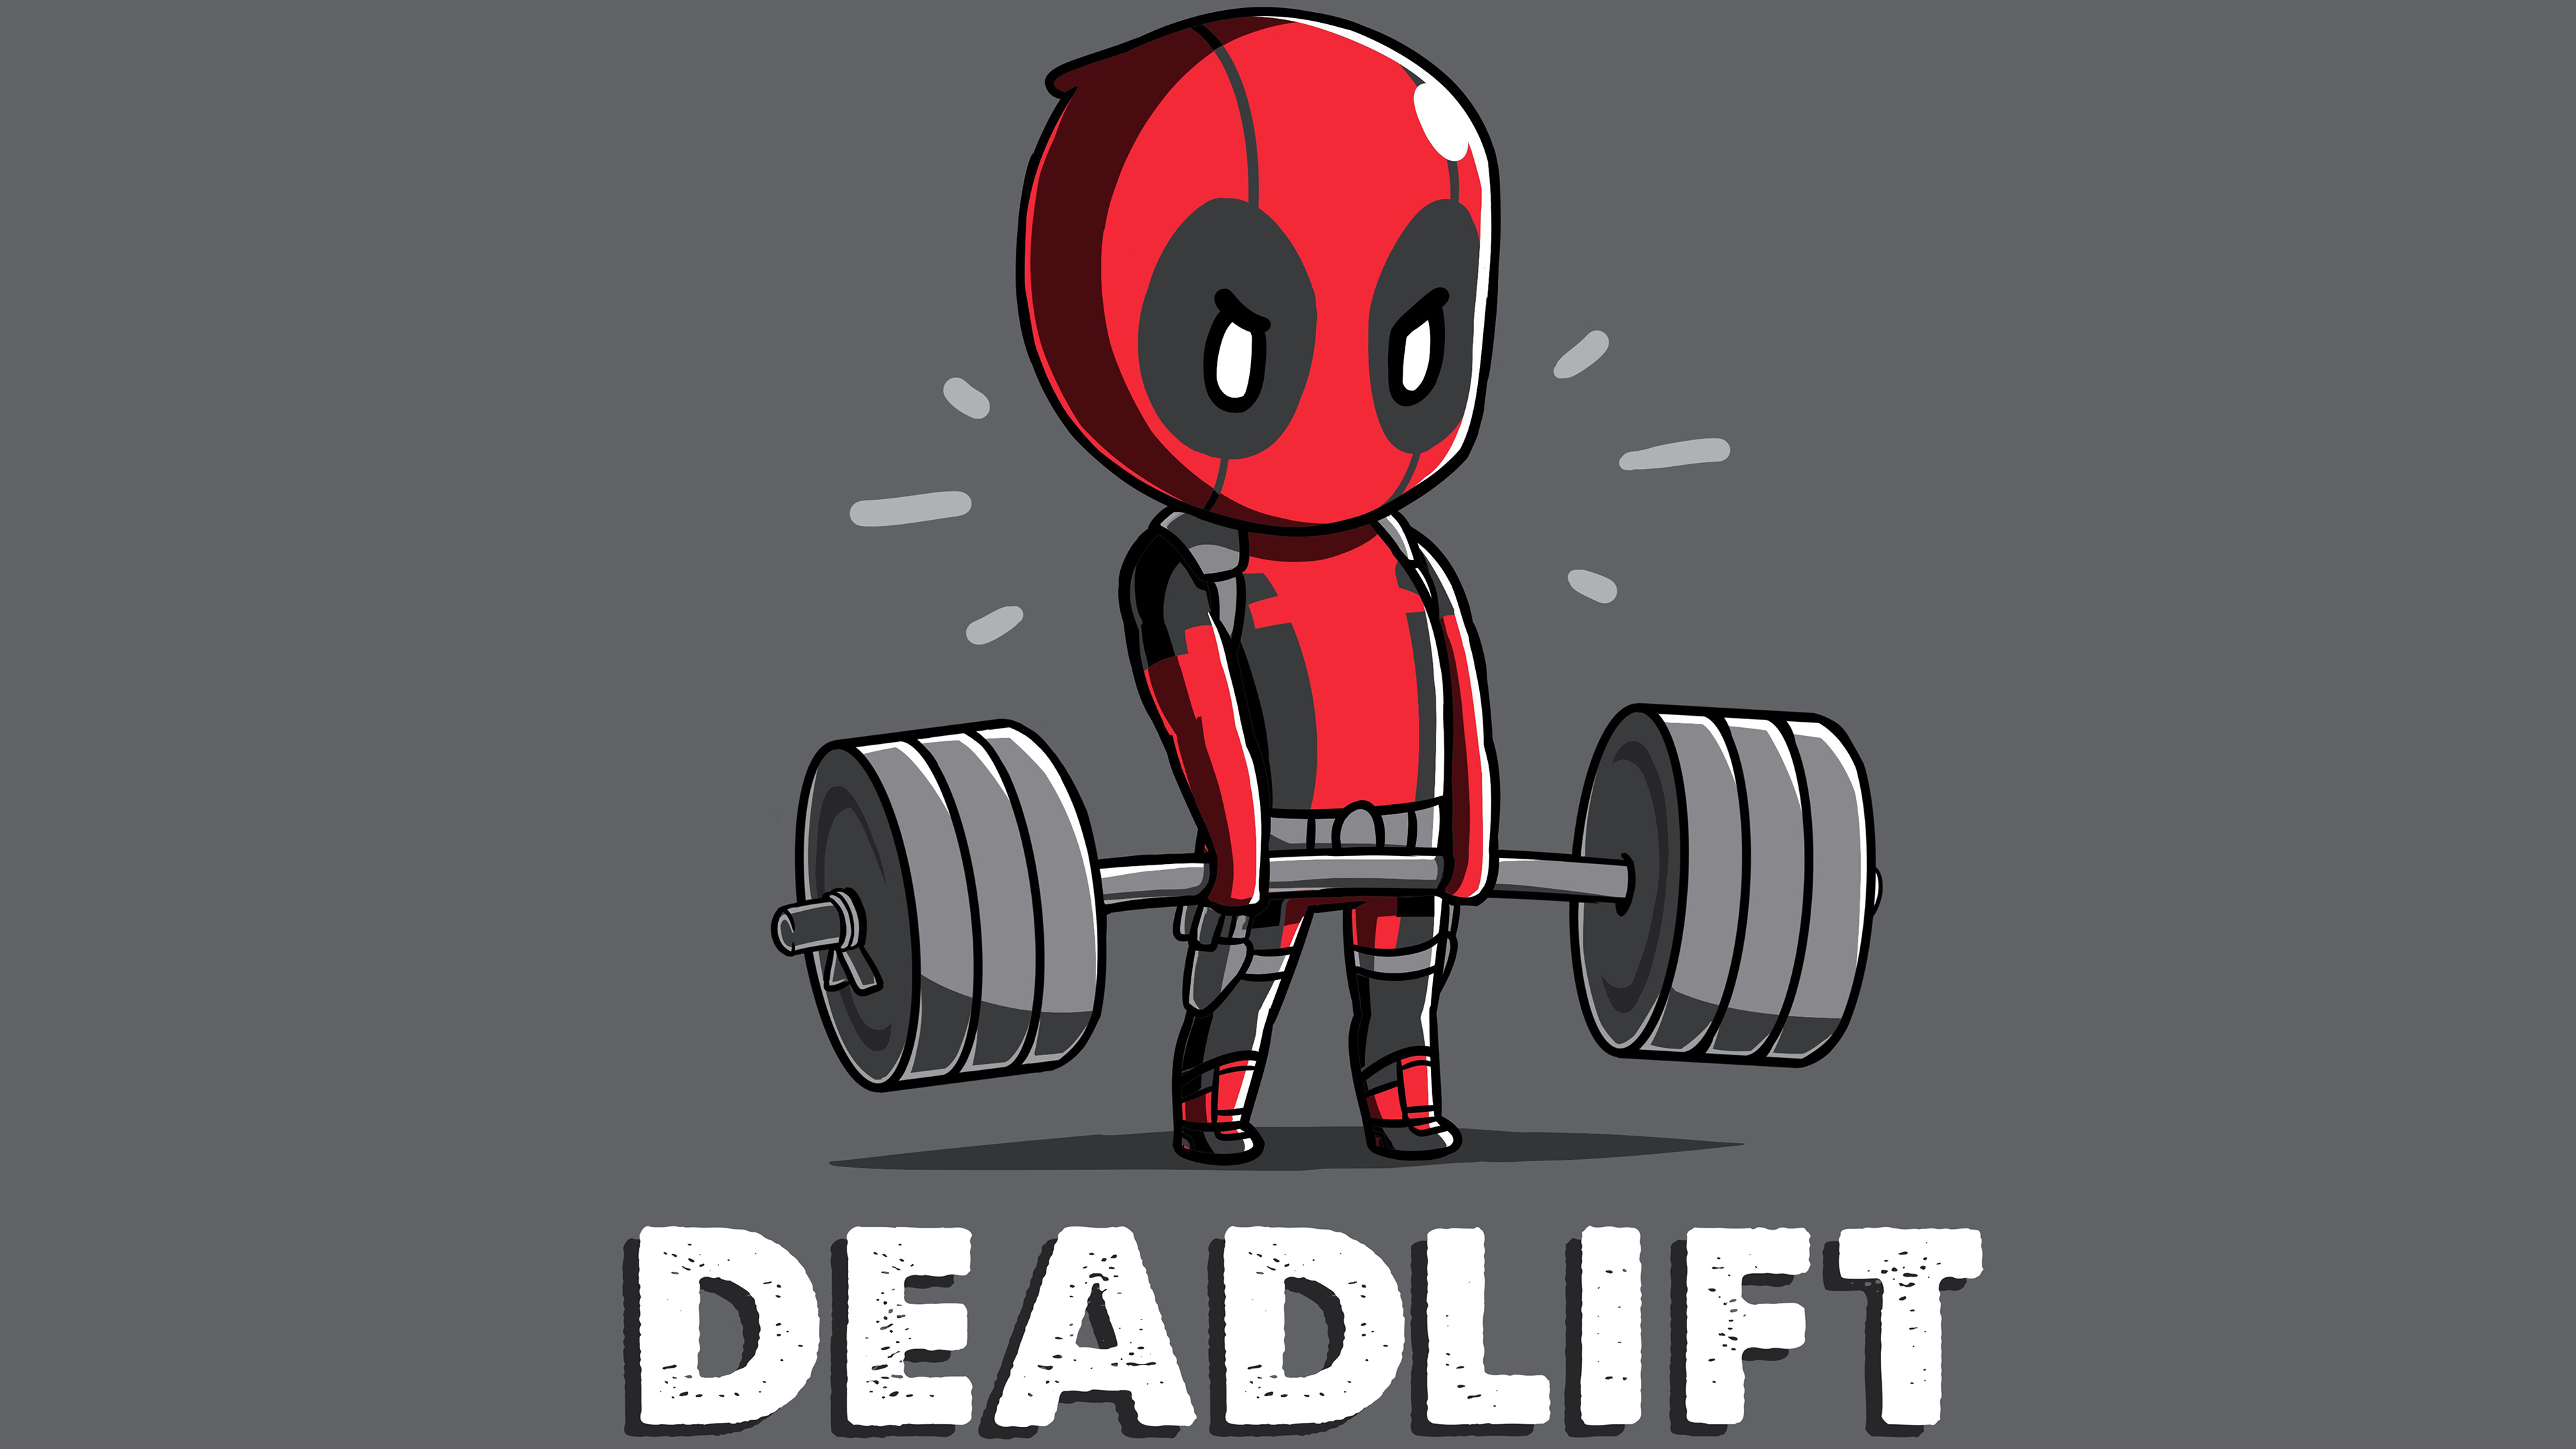 Deadpool deadlift funny 8k hd funny 4k wallpapers images backgrounds photos and pictures - Wallpaper silly ...